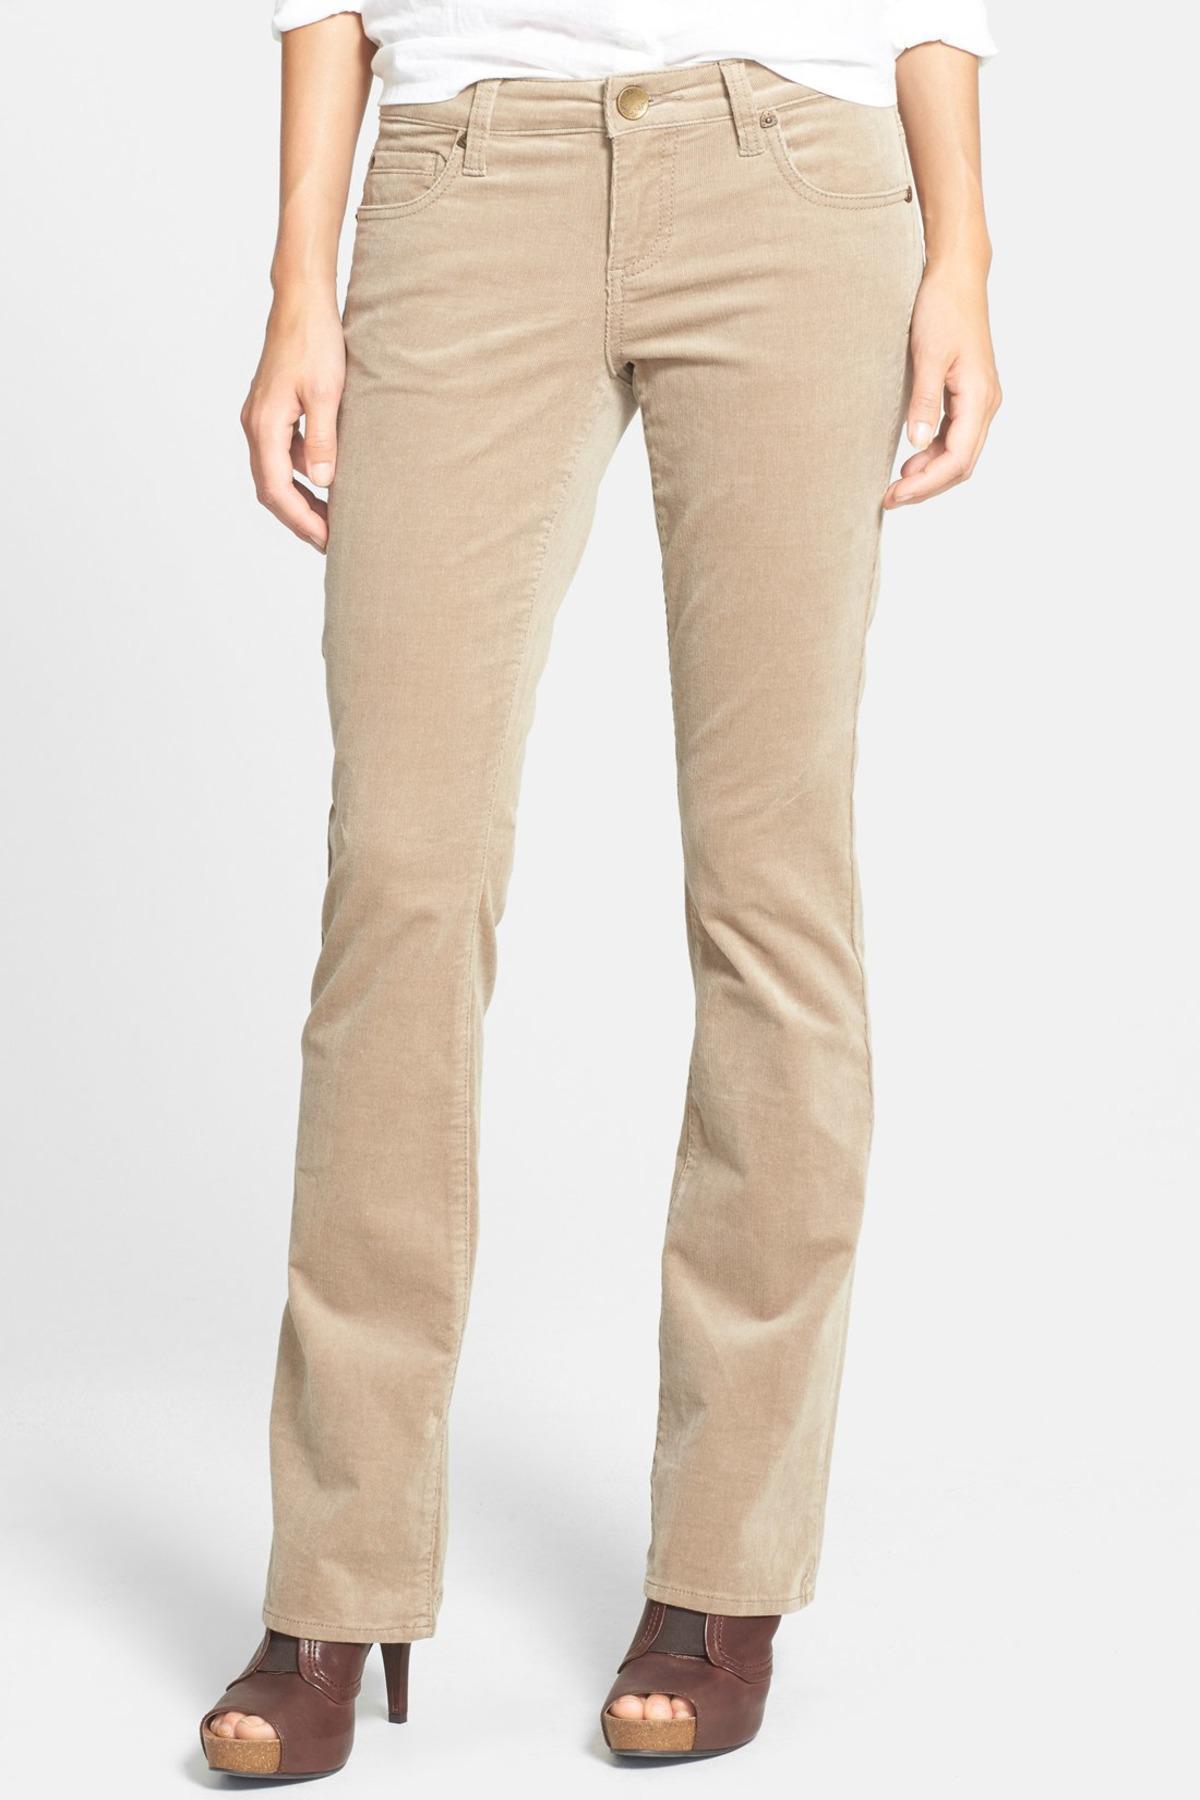 e7b674073680 Lyst - Kut From The Kloth Baby Bootcut Corduroy Pants in Natural